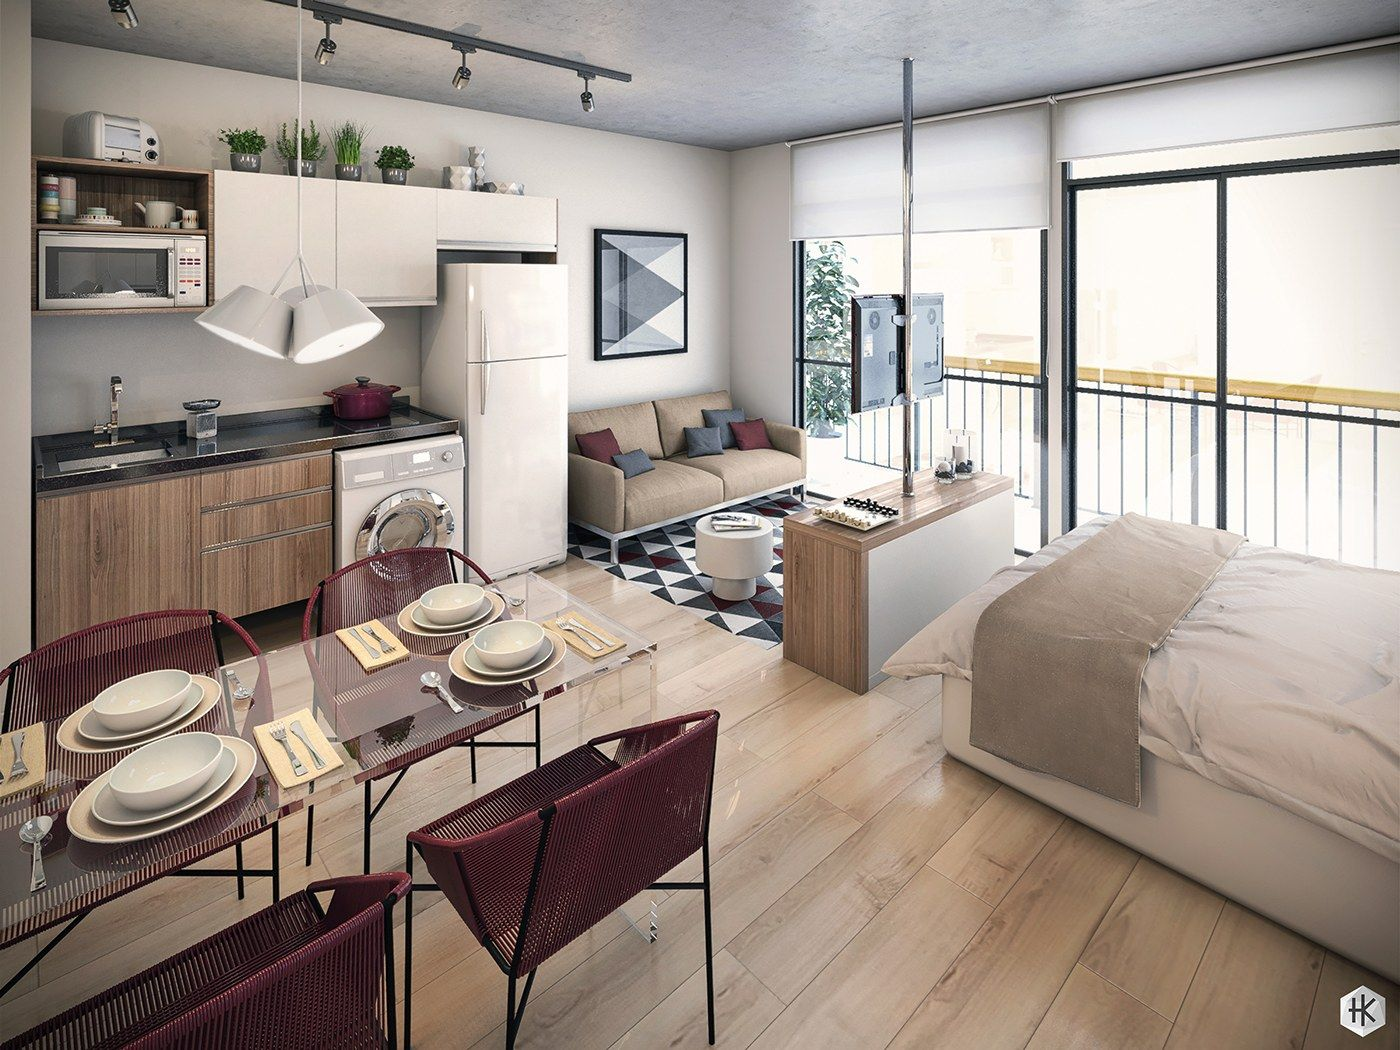 Studio apartments are notoriously difficult to decorate - especially within smaller layouts. The simplest approach is to create a coordinated style that ... : studio-style-apartment-designs - designwebi.com